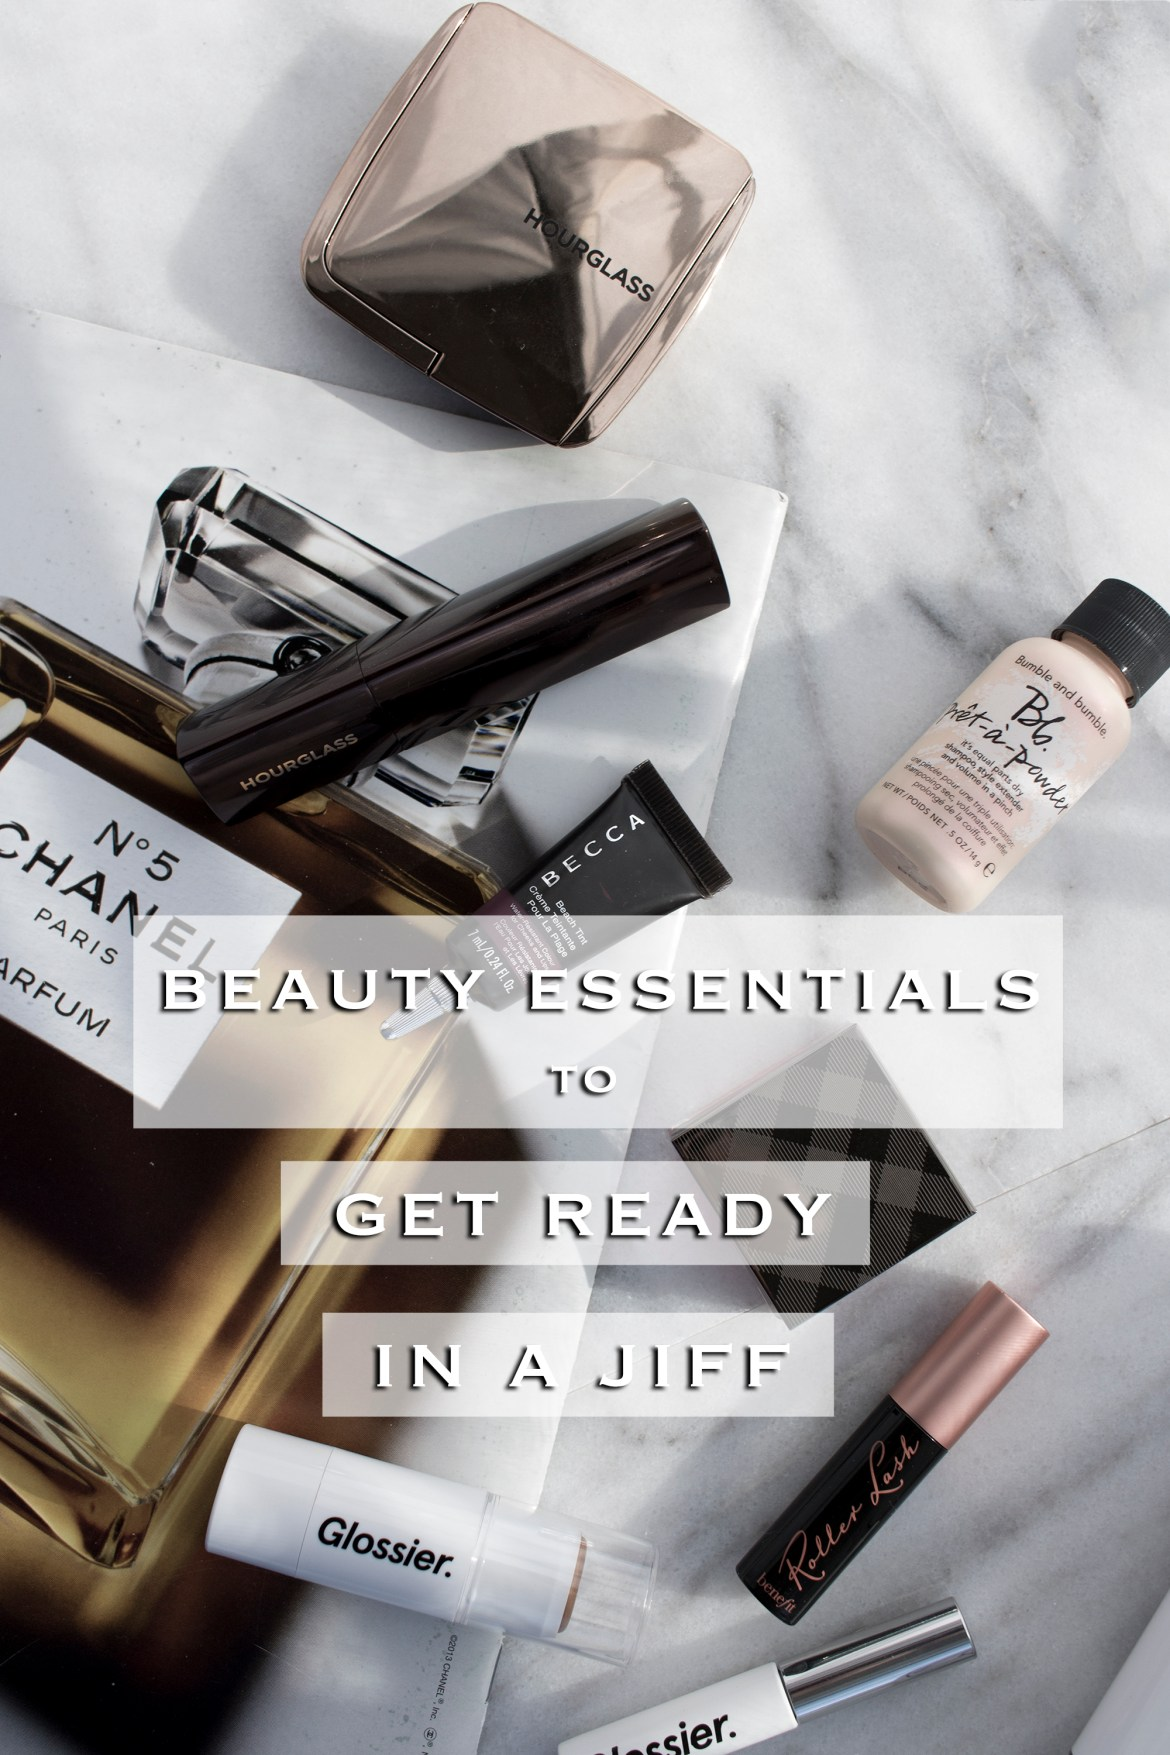 beauty essentials to get ready quickly in the morning